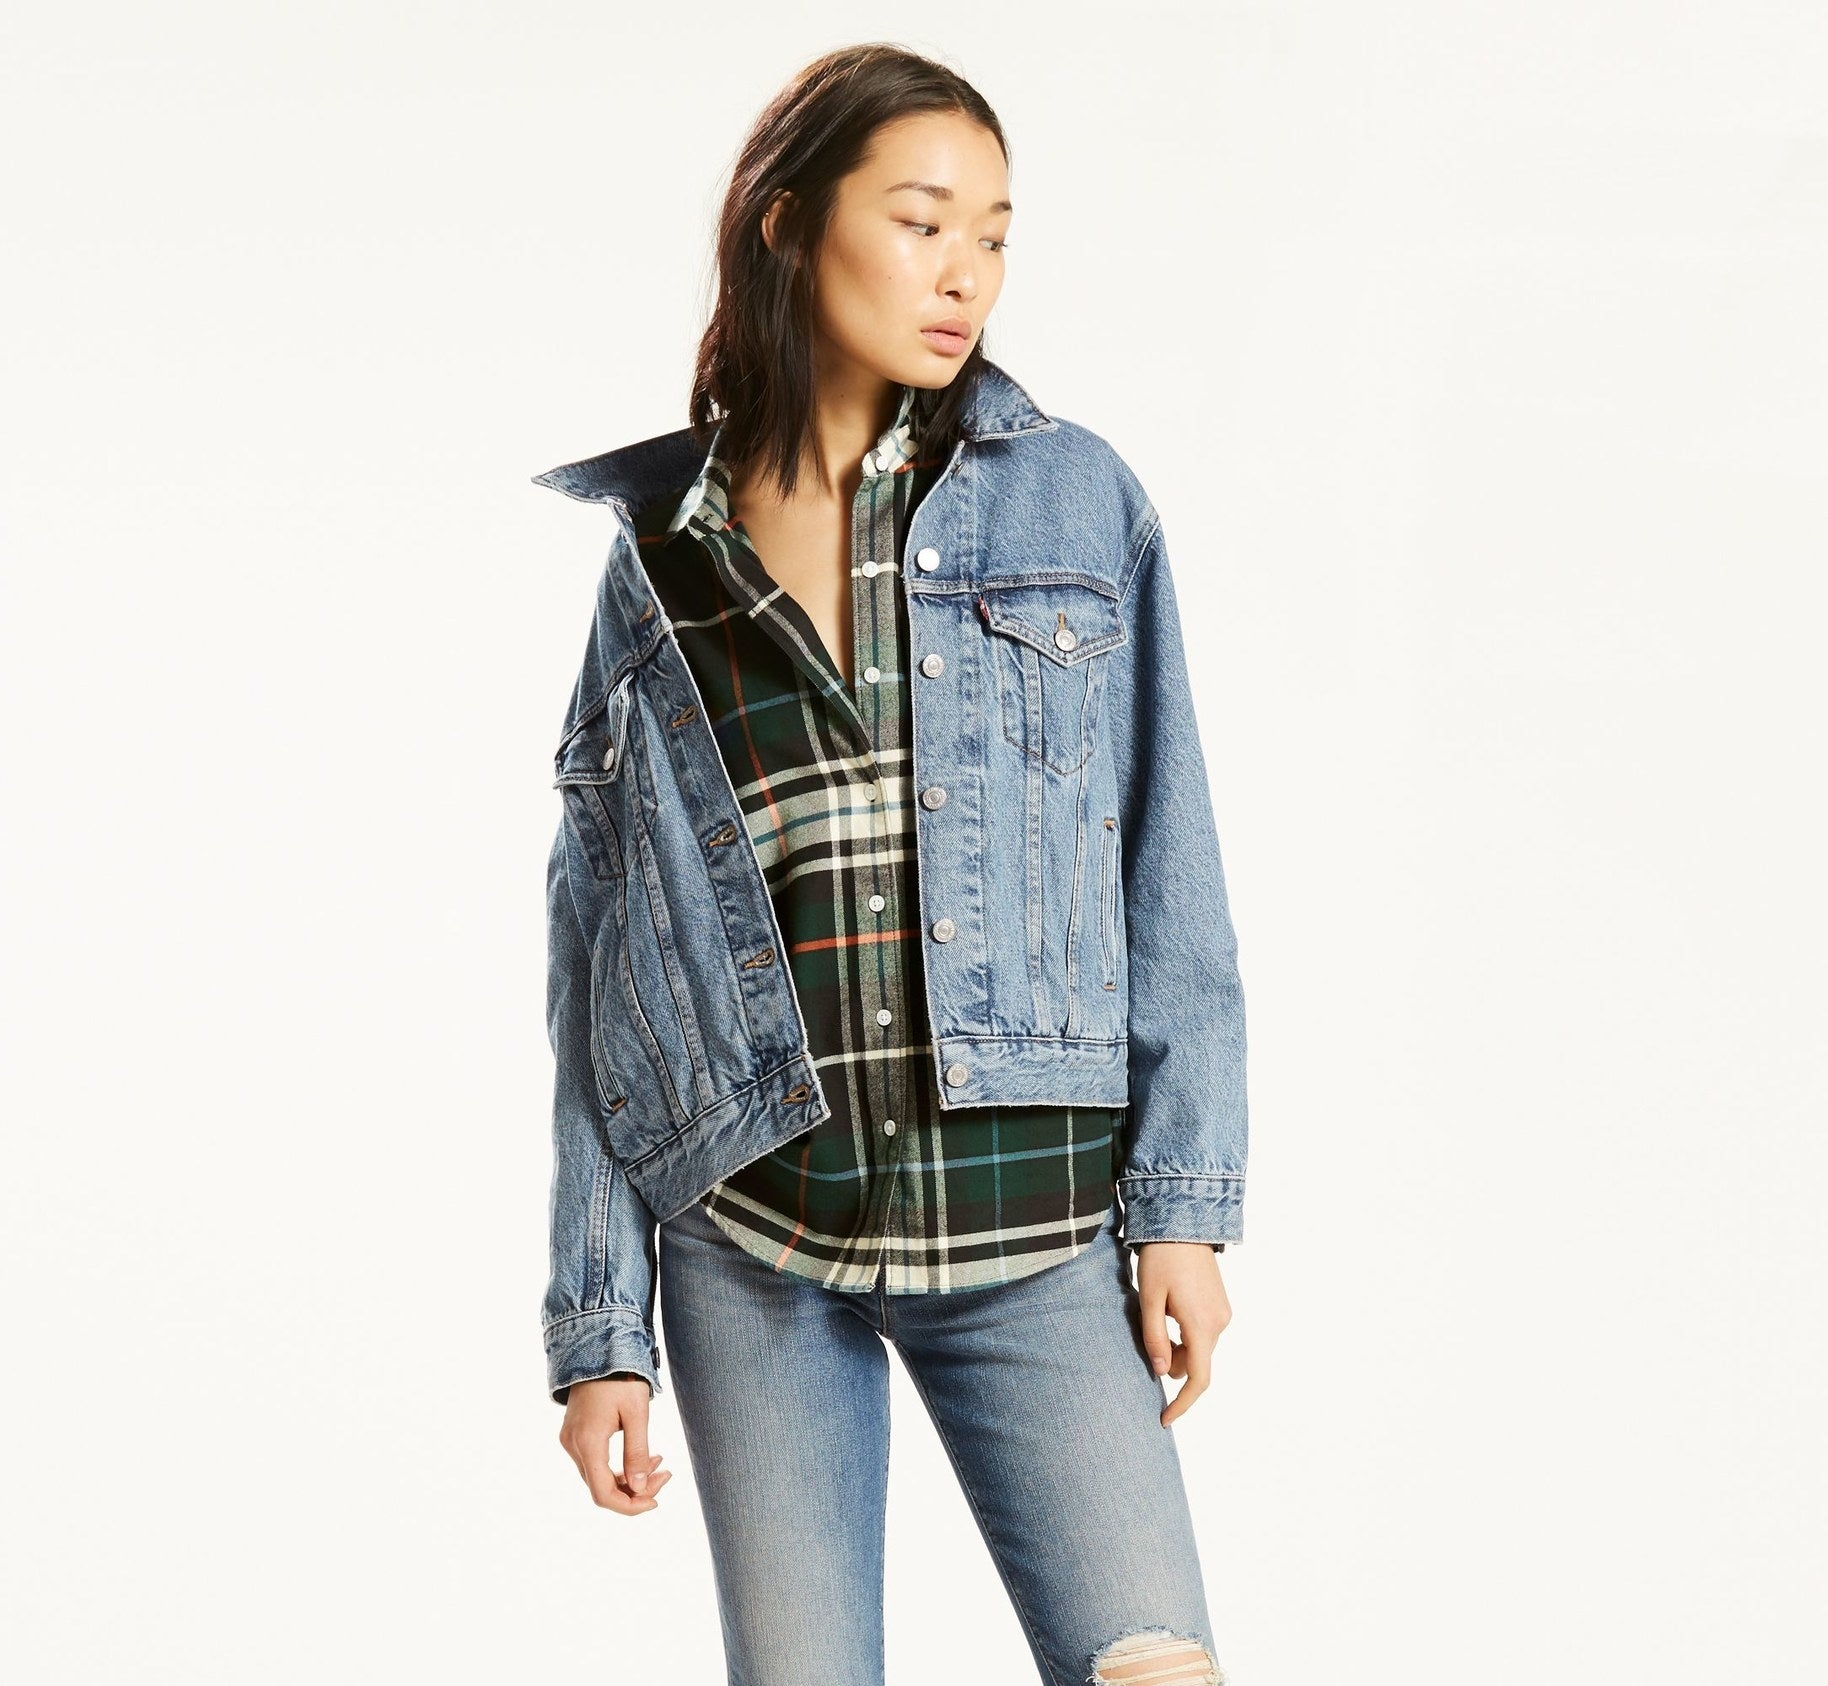 Loose fitting classic denim jacket over plaid shirt and jeans